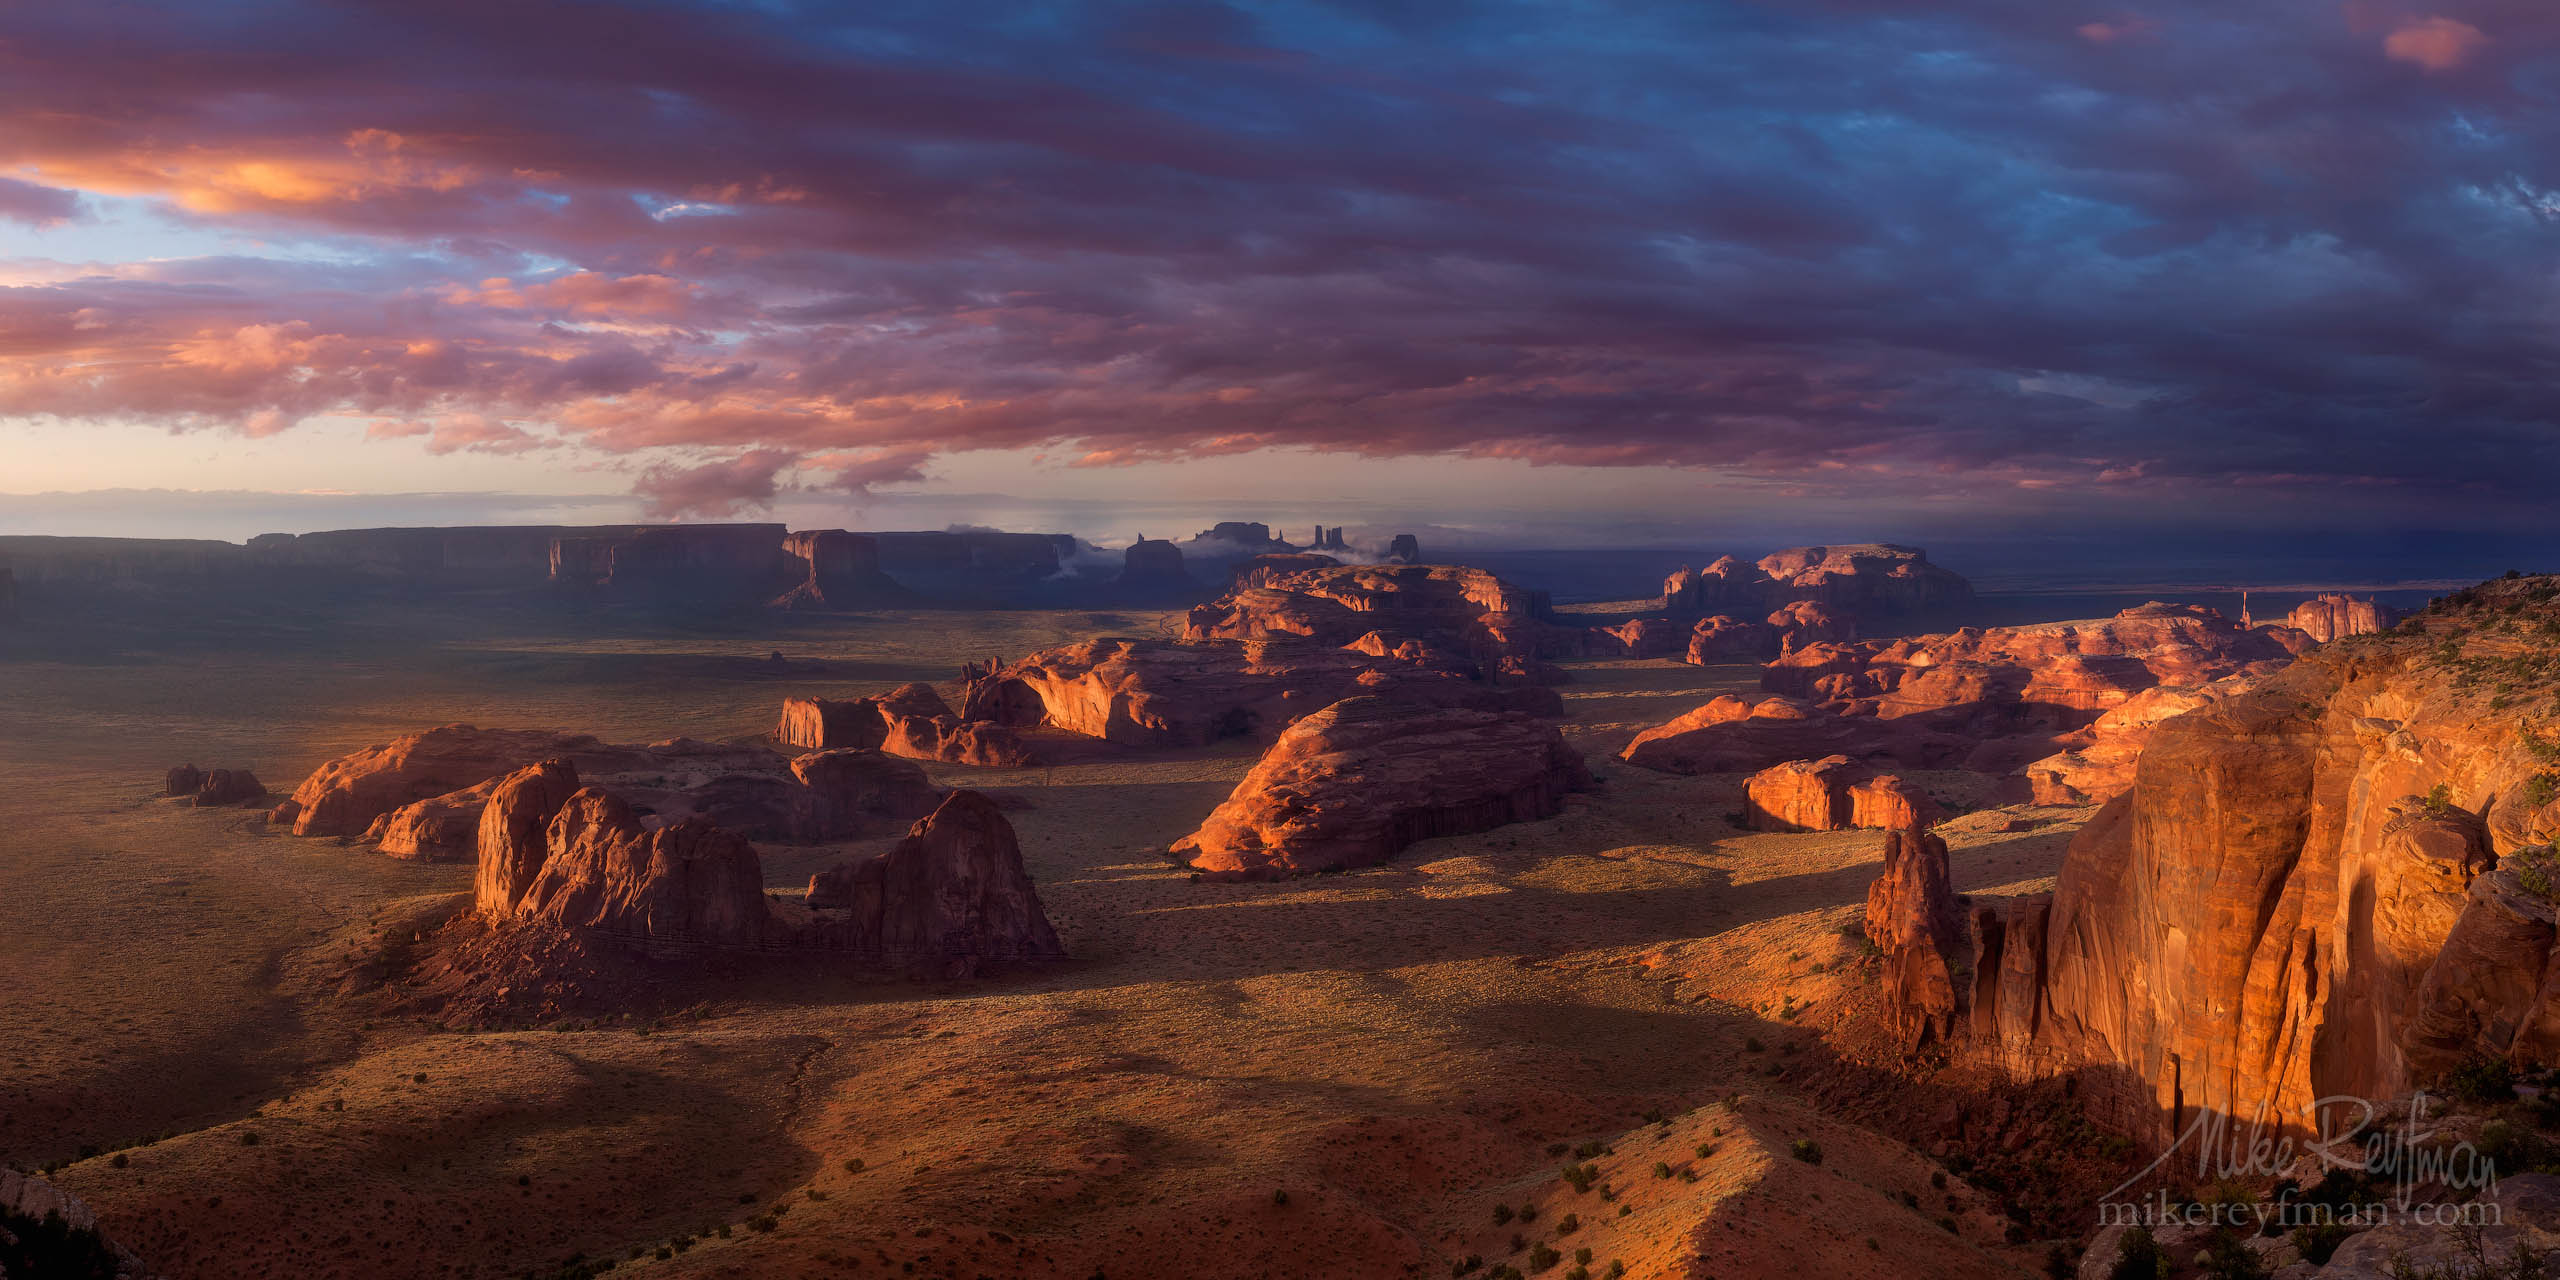 Hunts Mesa. Sunset chasing the late afternoon storm out of Monument Valley. Hunts Mesa, Monument Valley tribal Park, Arizona, USA. Panoramic P12-MR14067-69-4110-12-Pano - Selected panoramic images with 2:1 aspect ratio - Mike Reyfman Photography